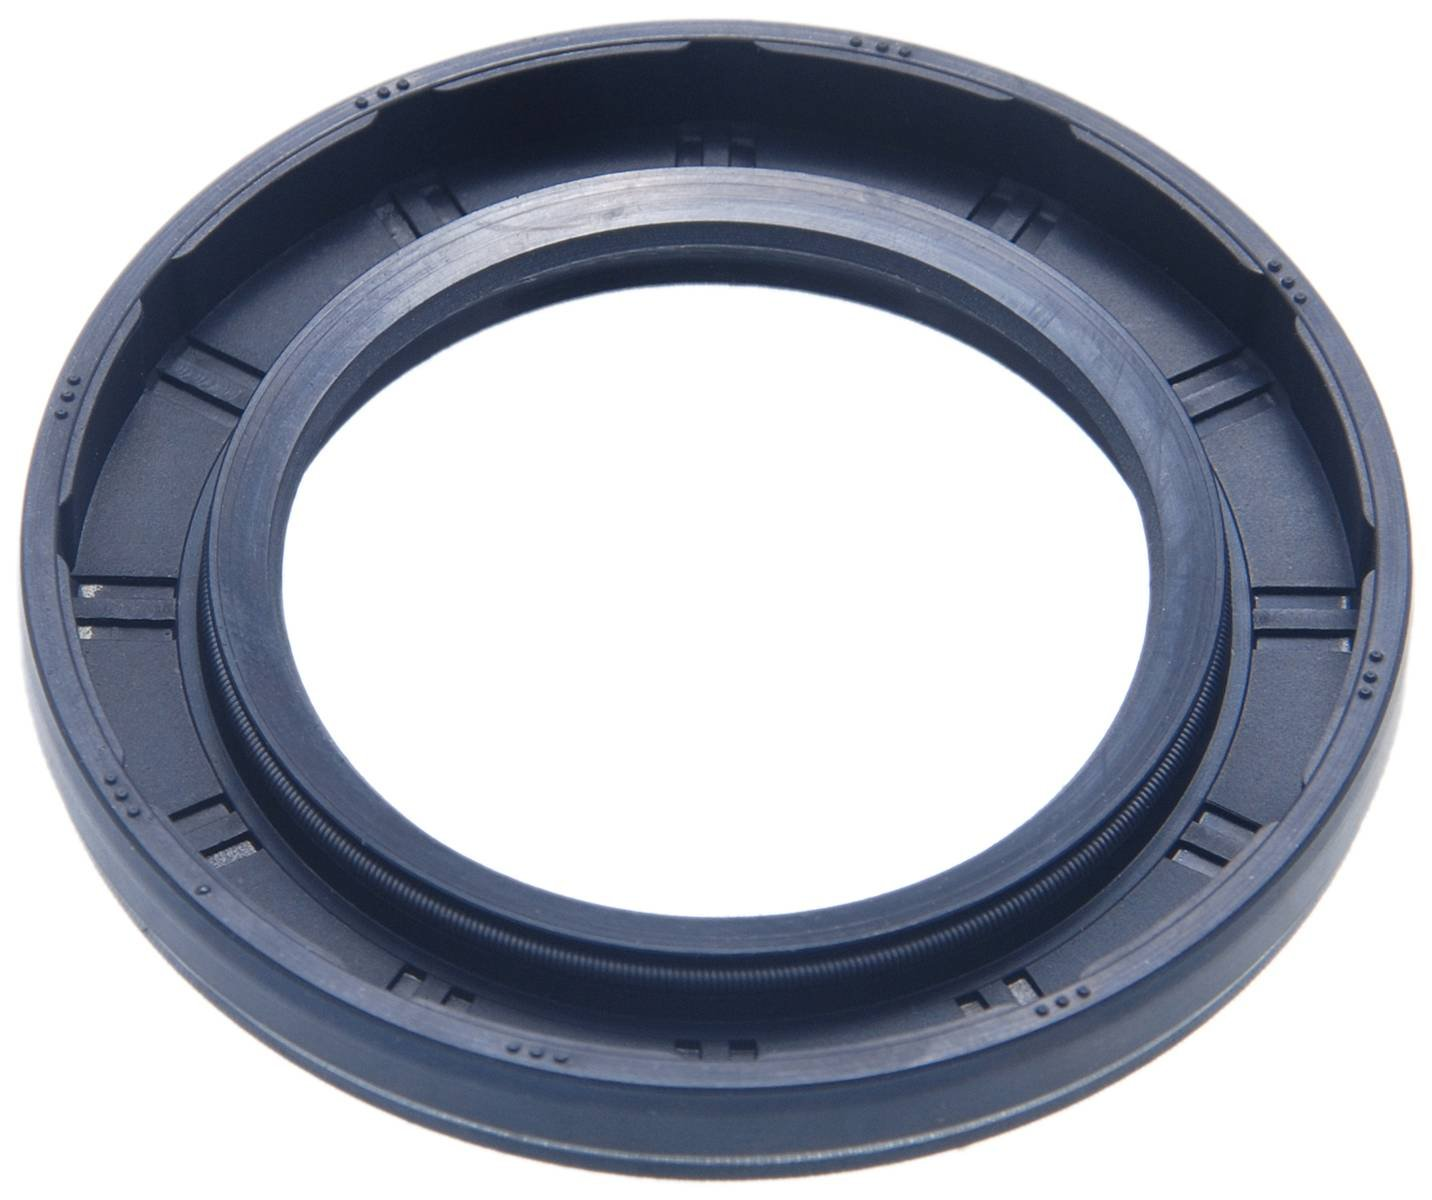 91207-P7Z-003 / 91207P7Z003 - Oil Seal (Axle Case) (44X68X8) For Honda Febest